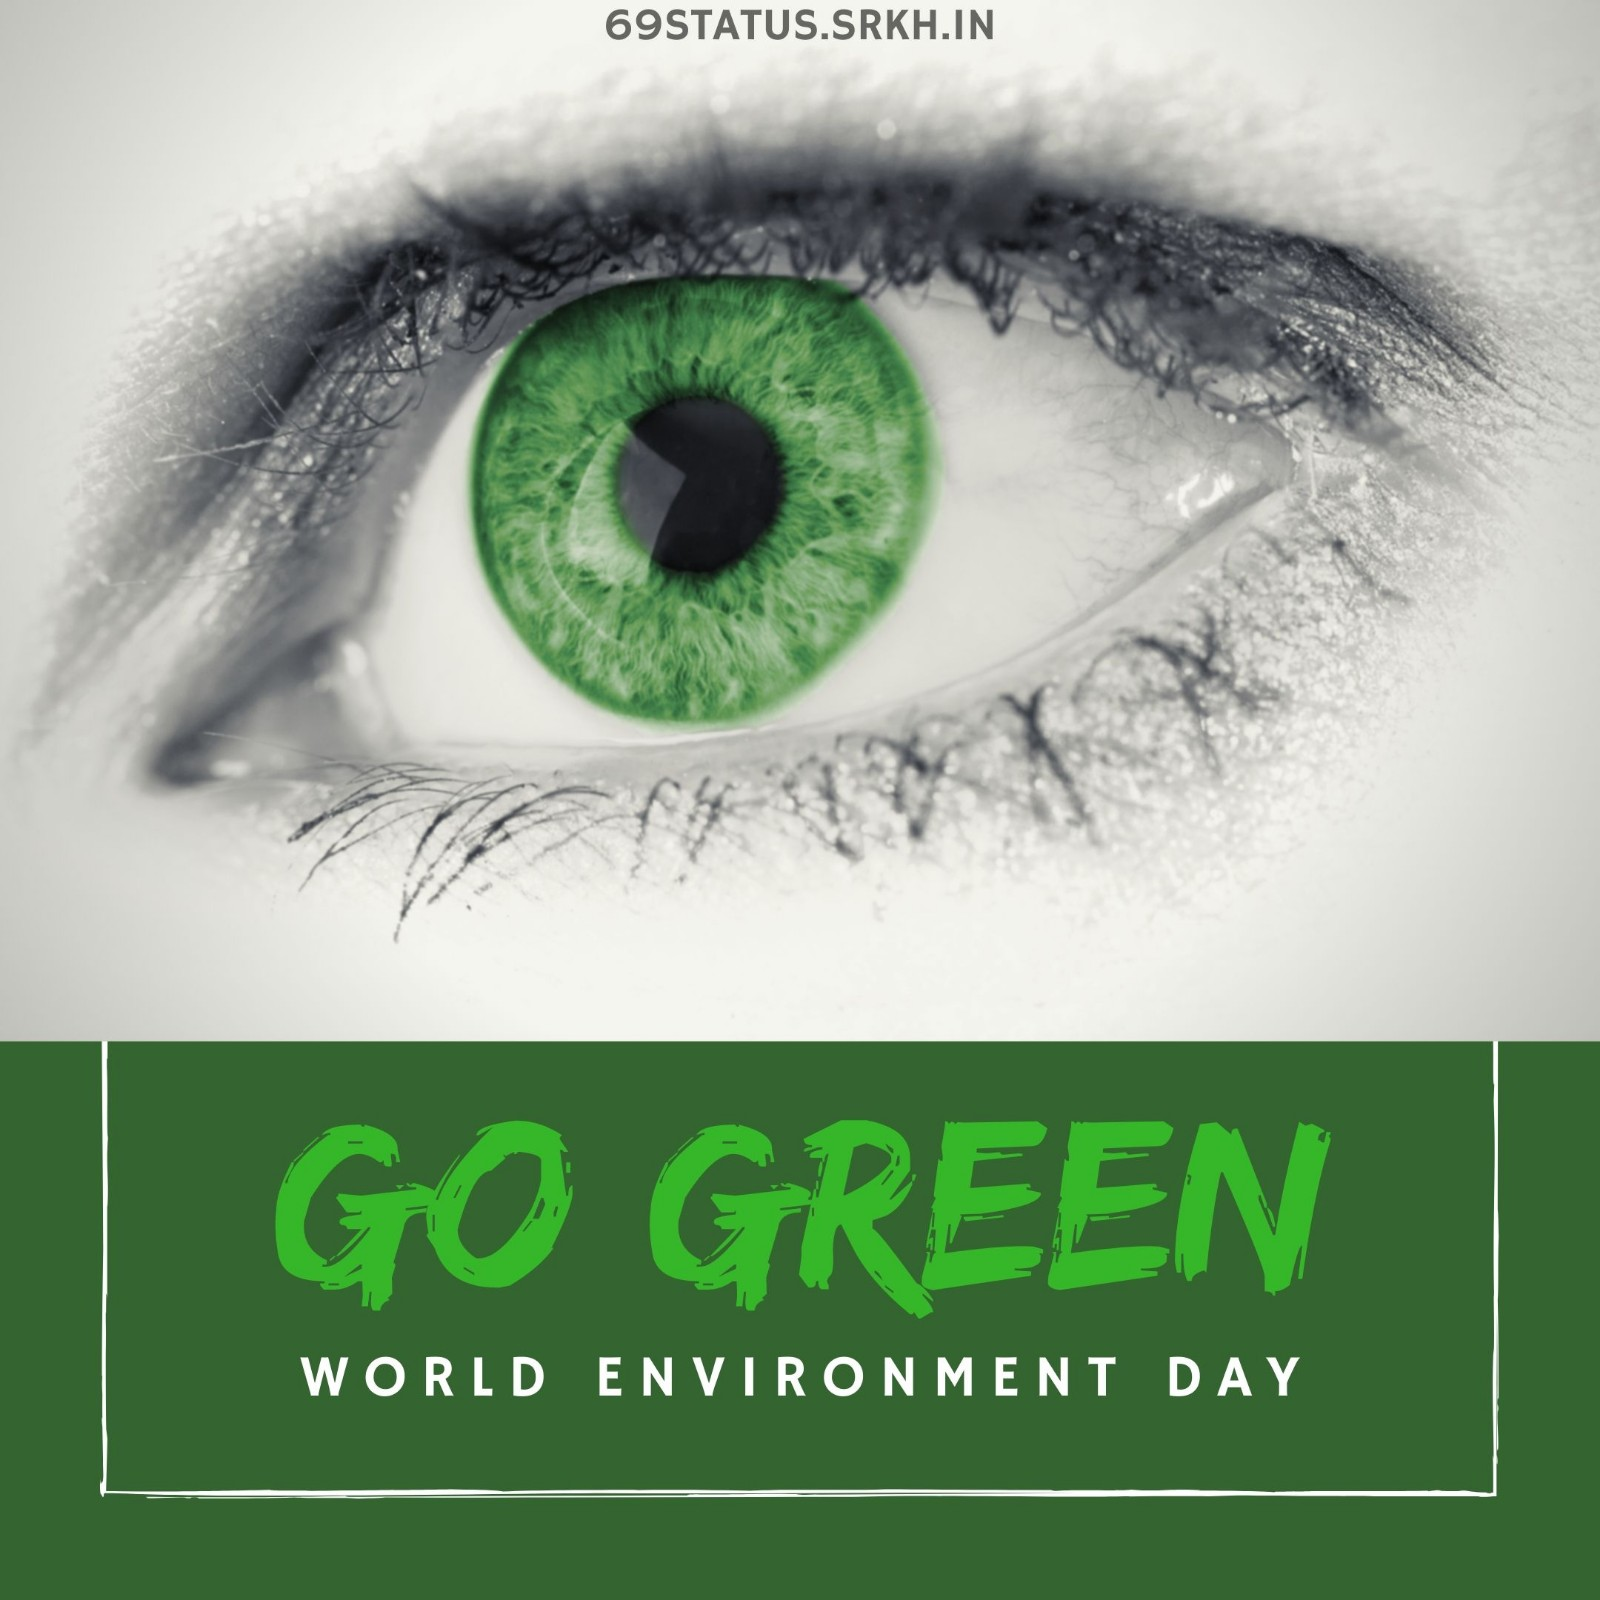 World Environment Day Poster Images Go Green full HD free download.